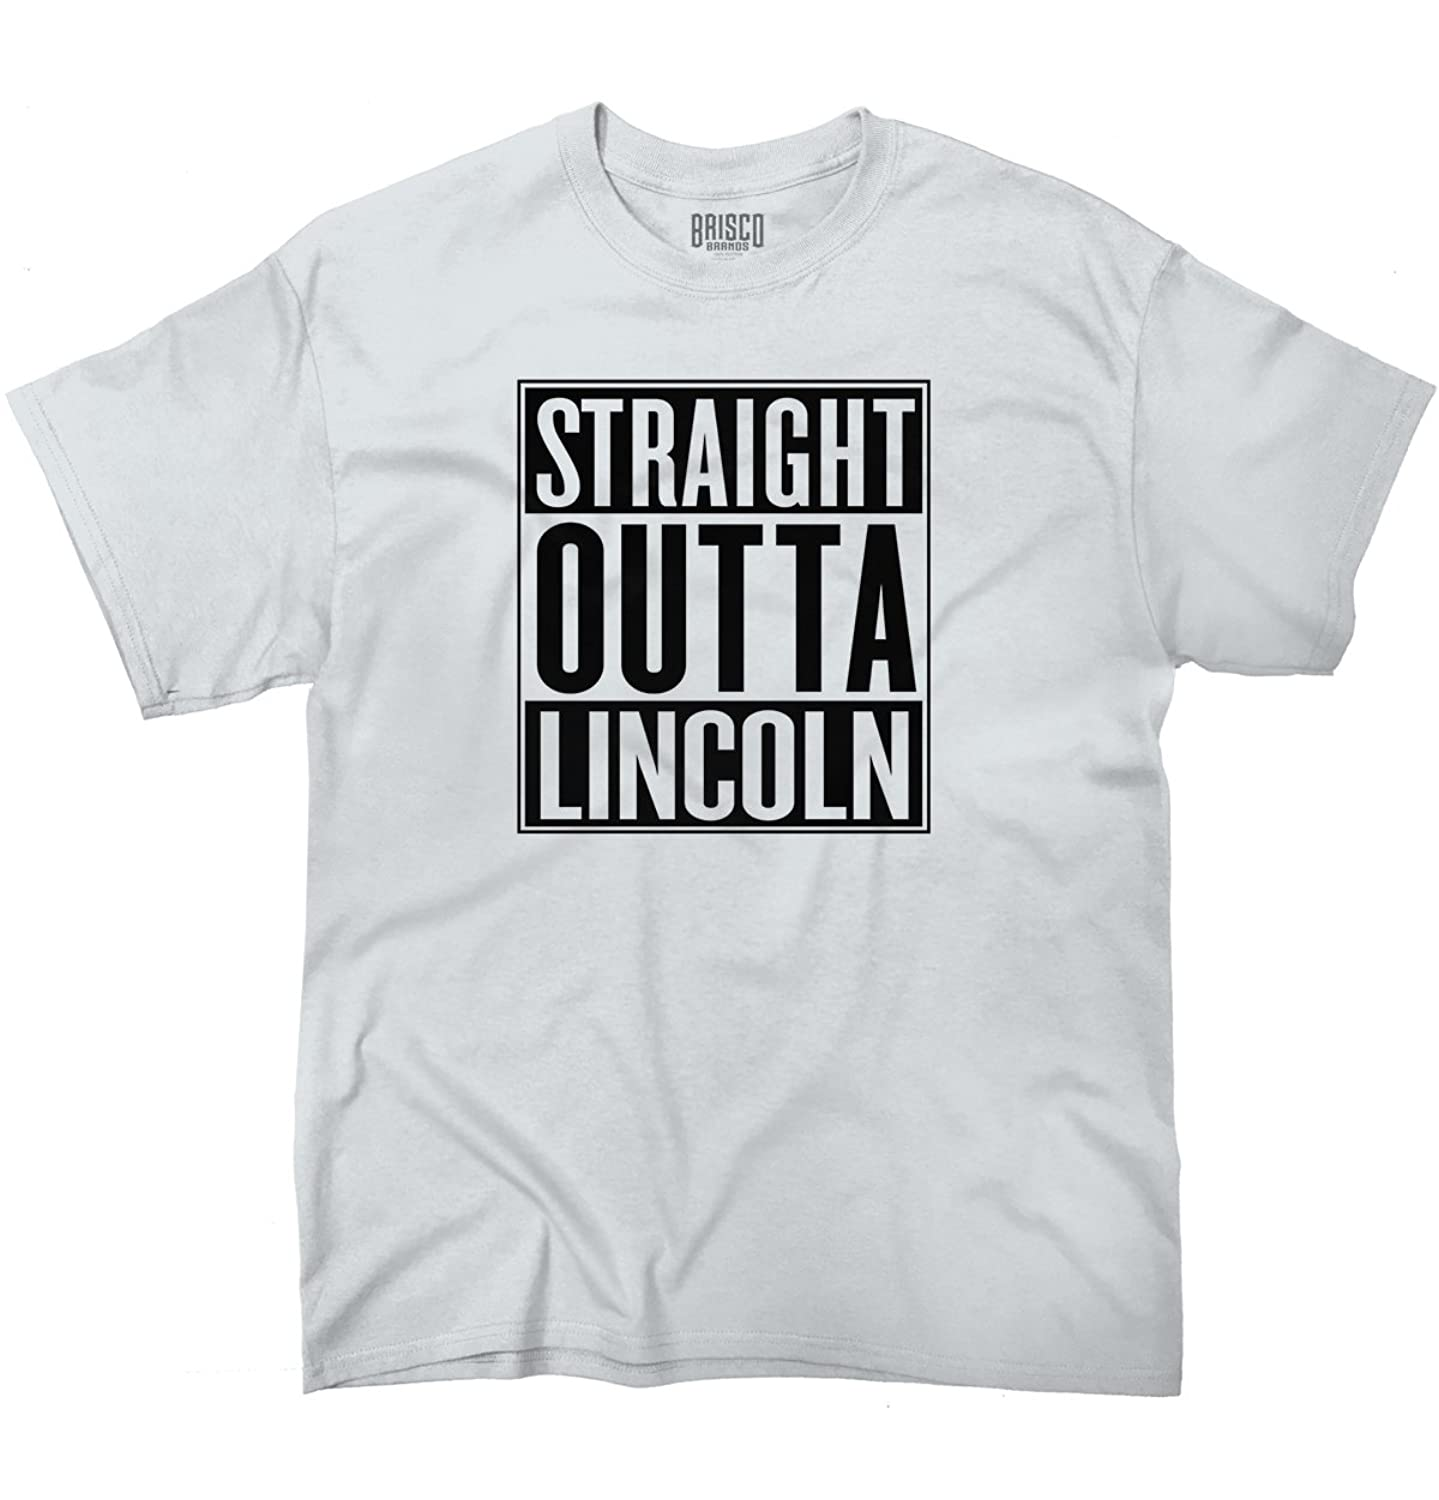 Straight Outta Lincoln, NE City Funny Movie T Shirt Gift Ideas T-Shirt Tee